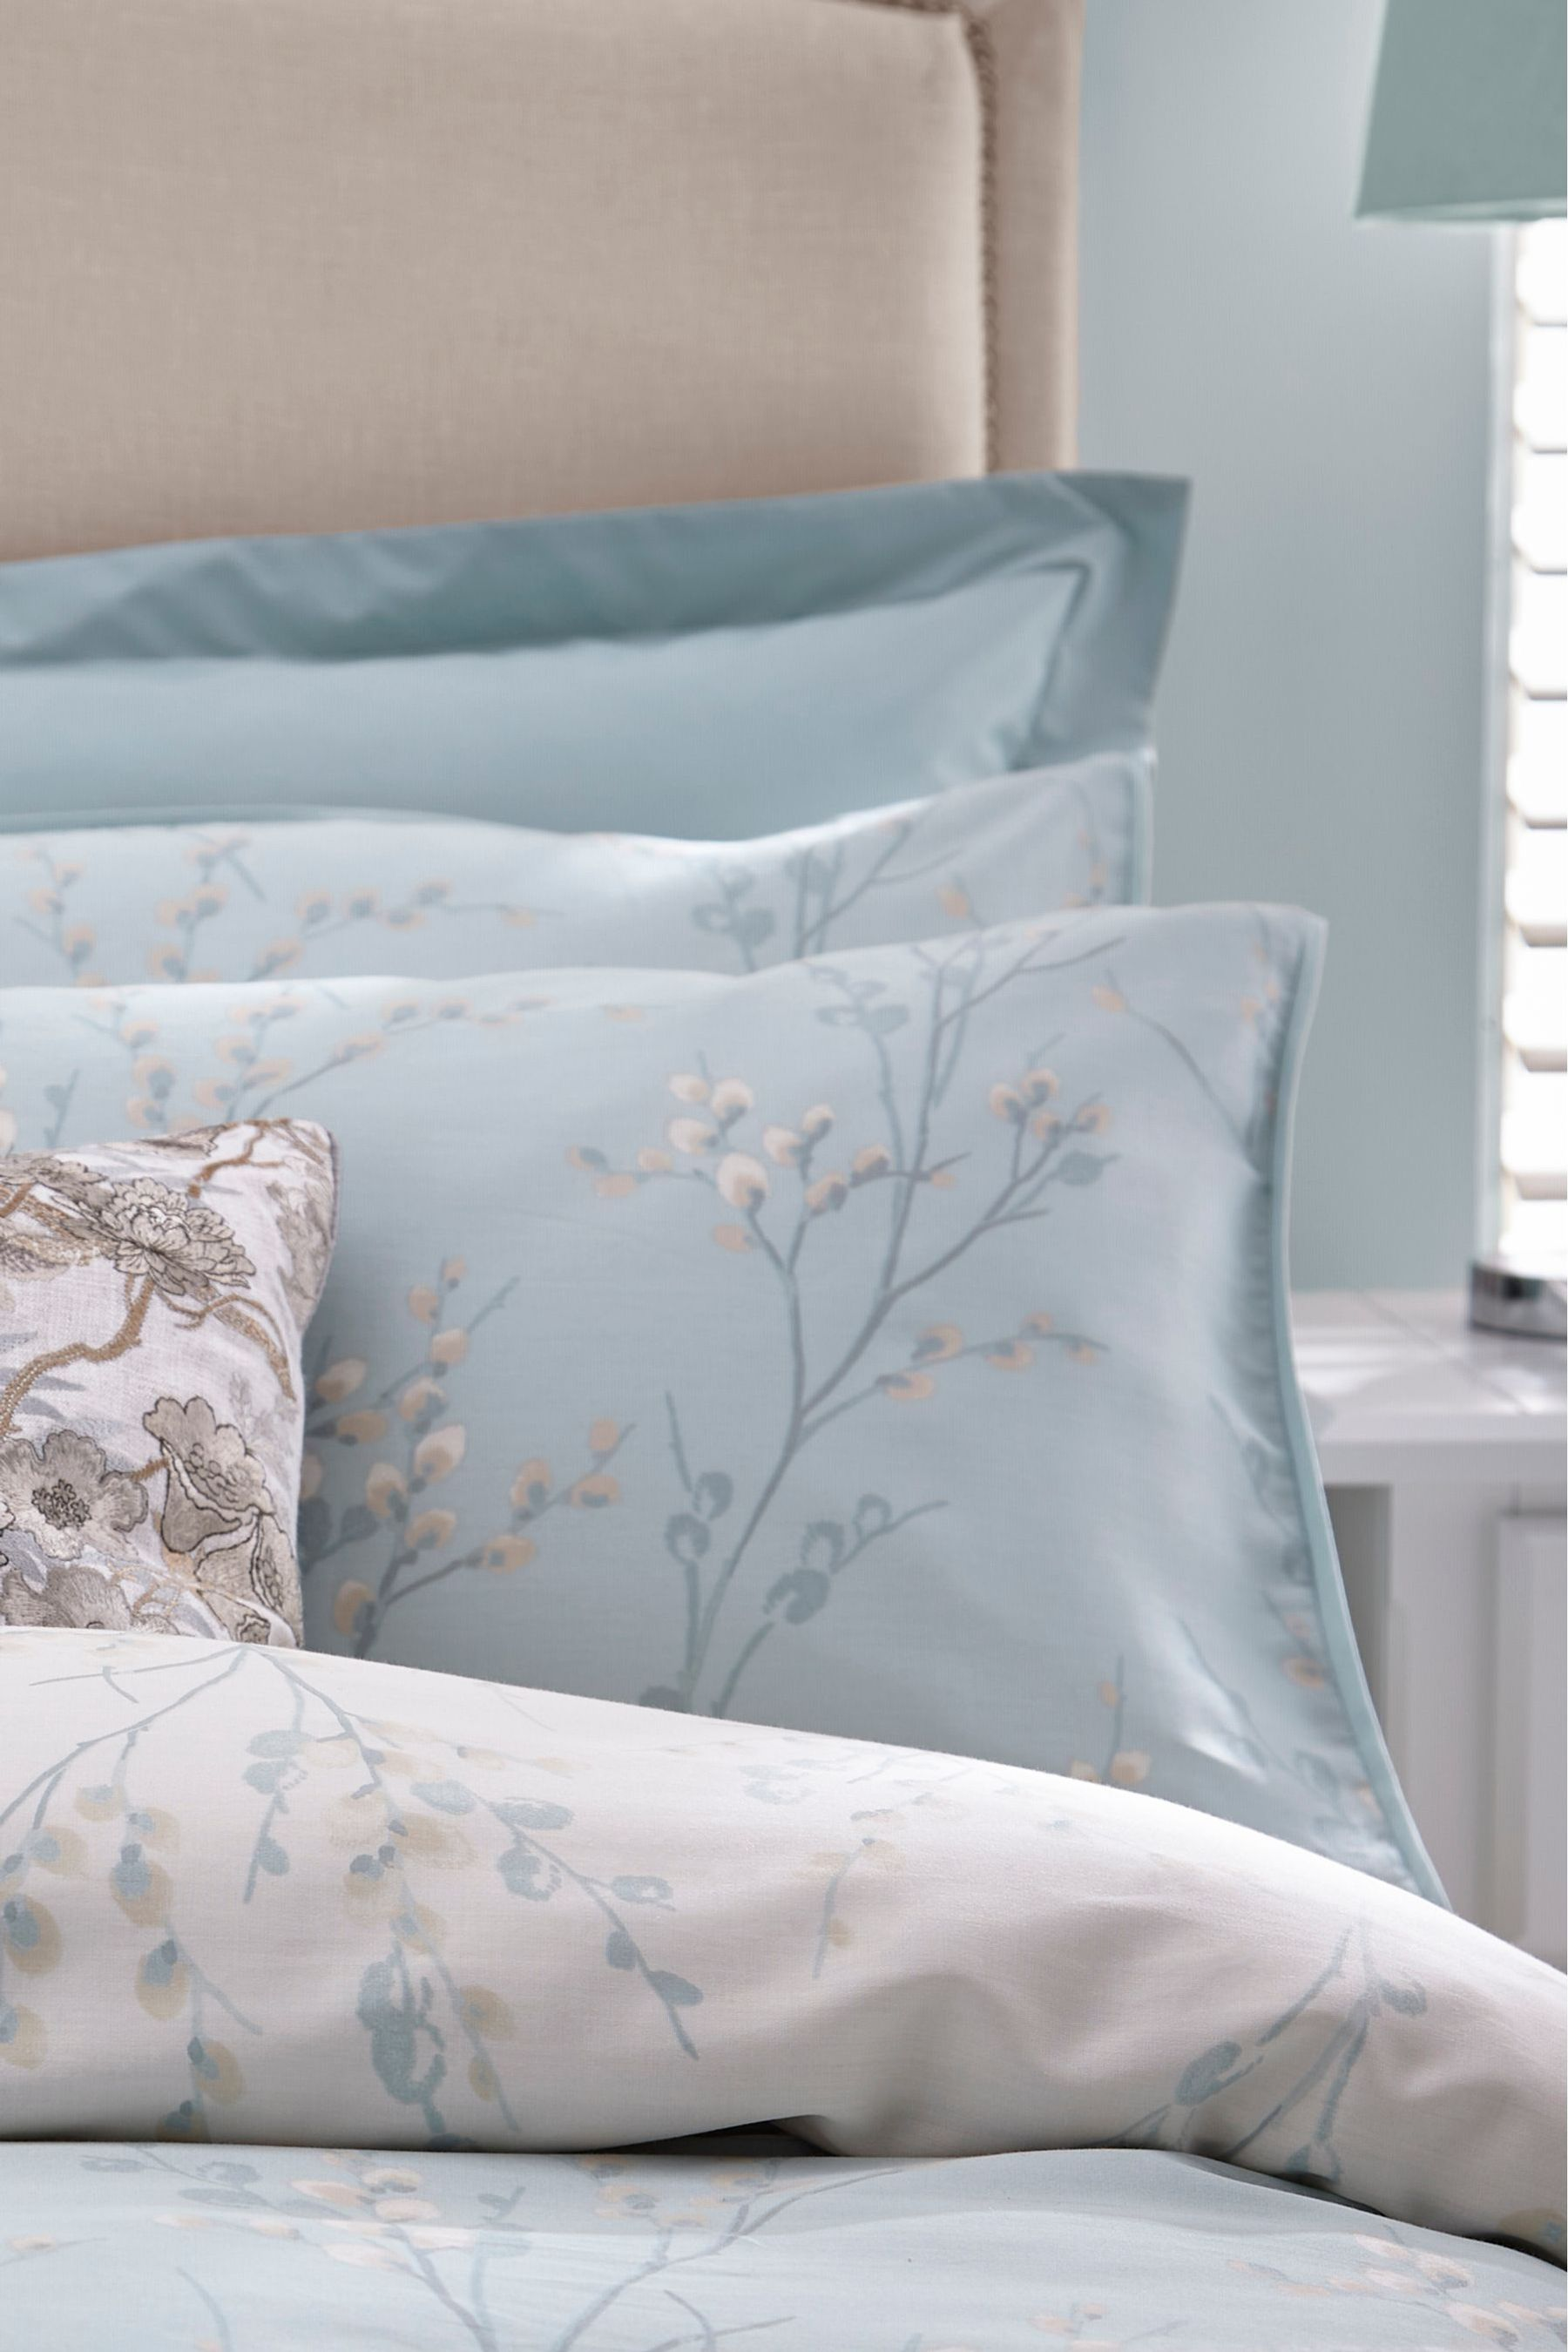 Buy Set of 2 Laura Ashley Pussy Willow Pillowcases from